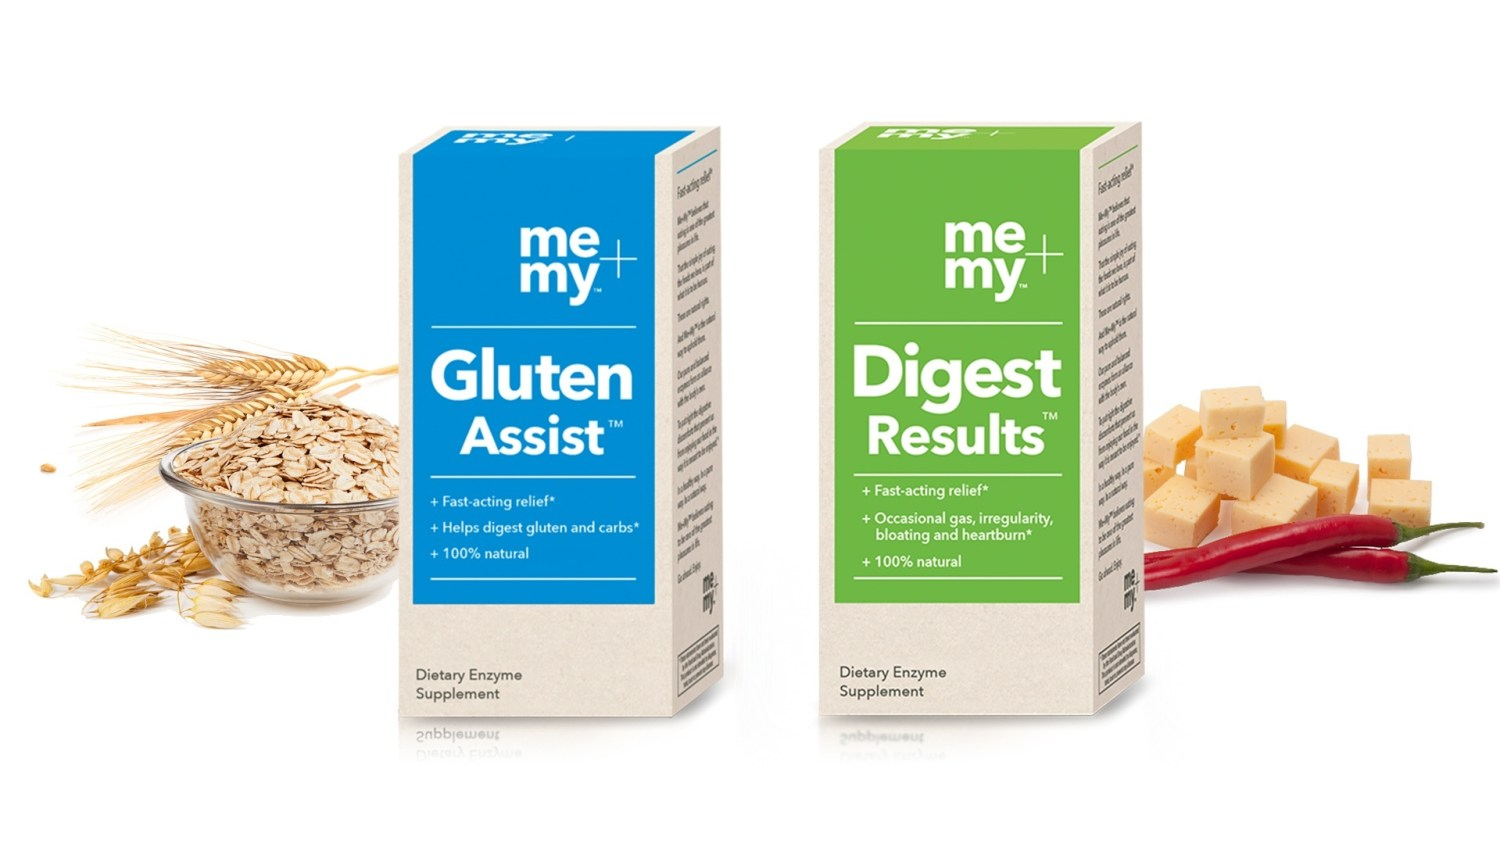 Me + My Gluten Assist - Me + My Digest Results